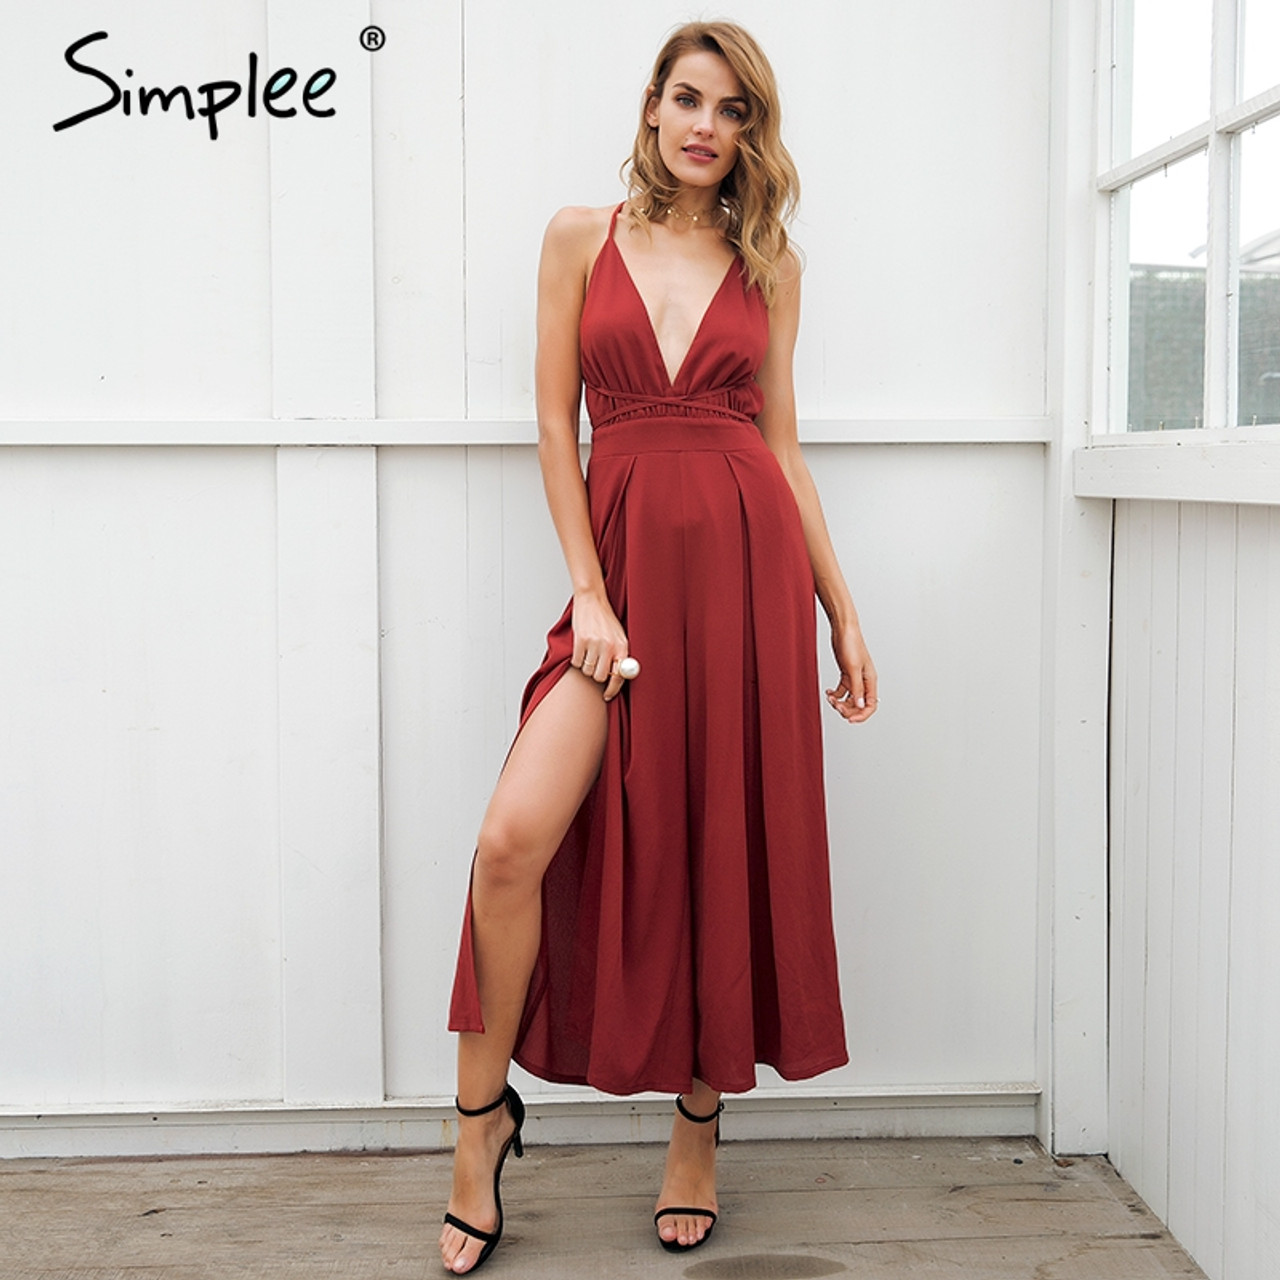 4c6093583e83 Simplee Sexy v neck backless print jumpsuit romper women Lace up halter  high waist short overalls ...